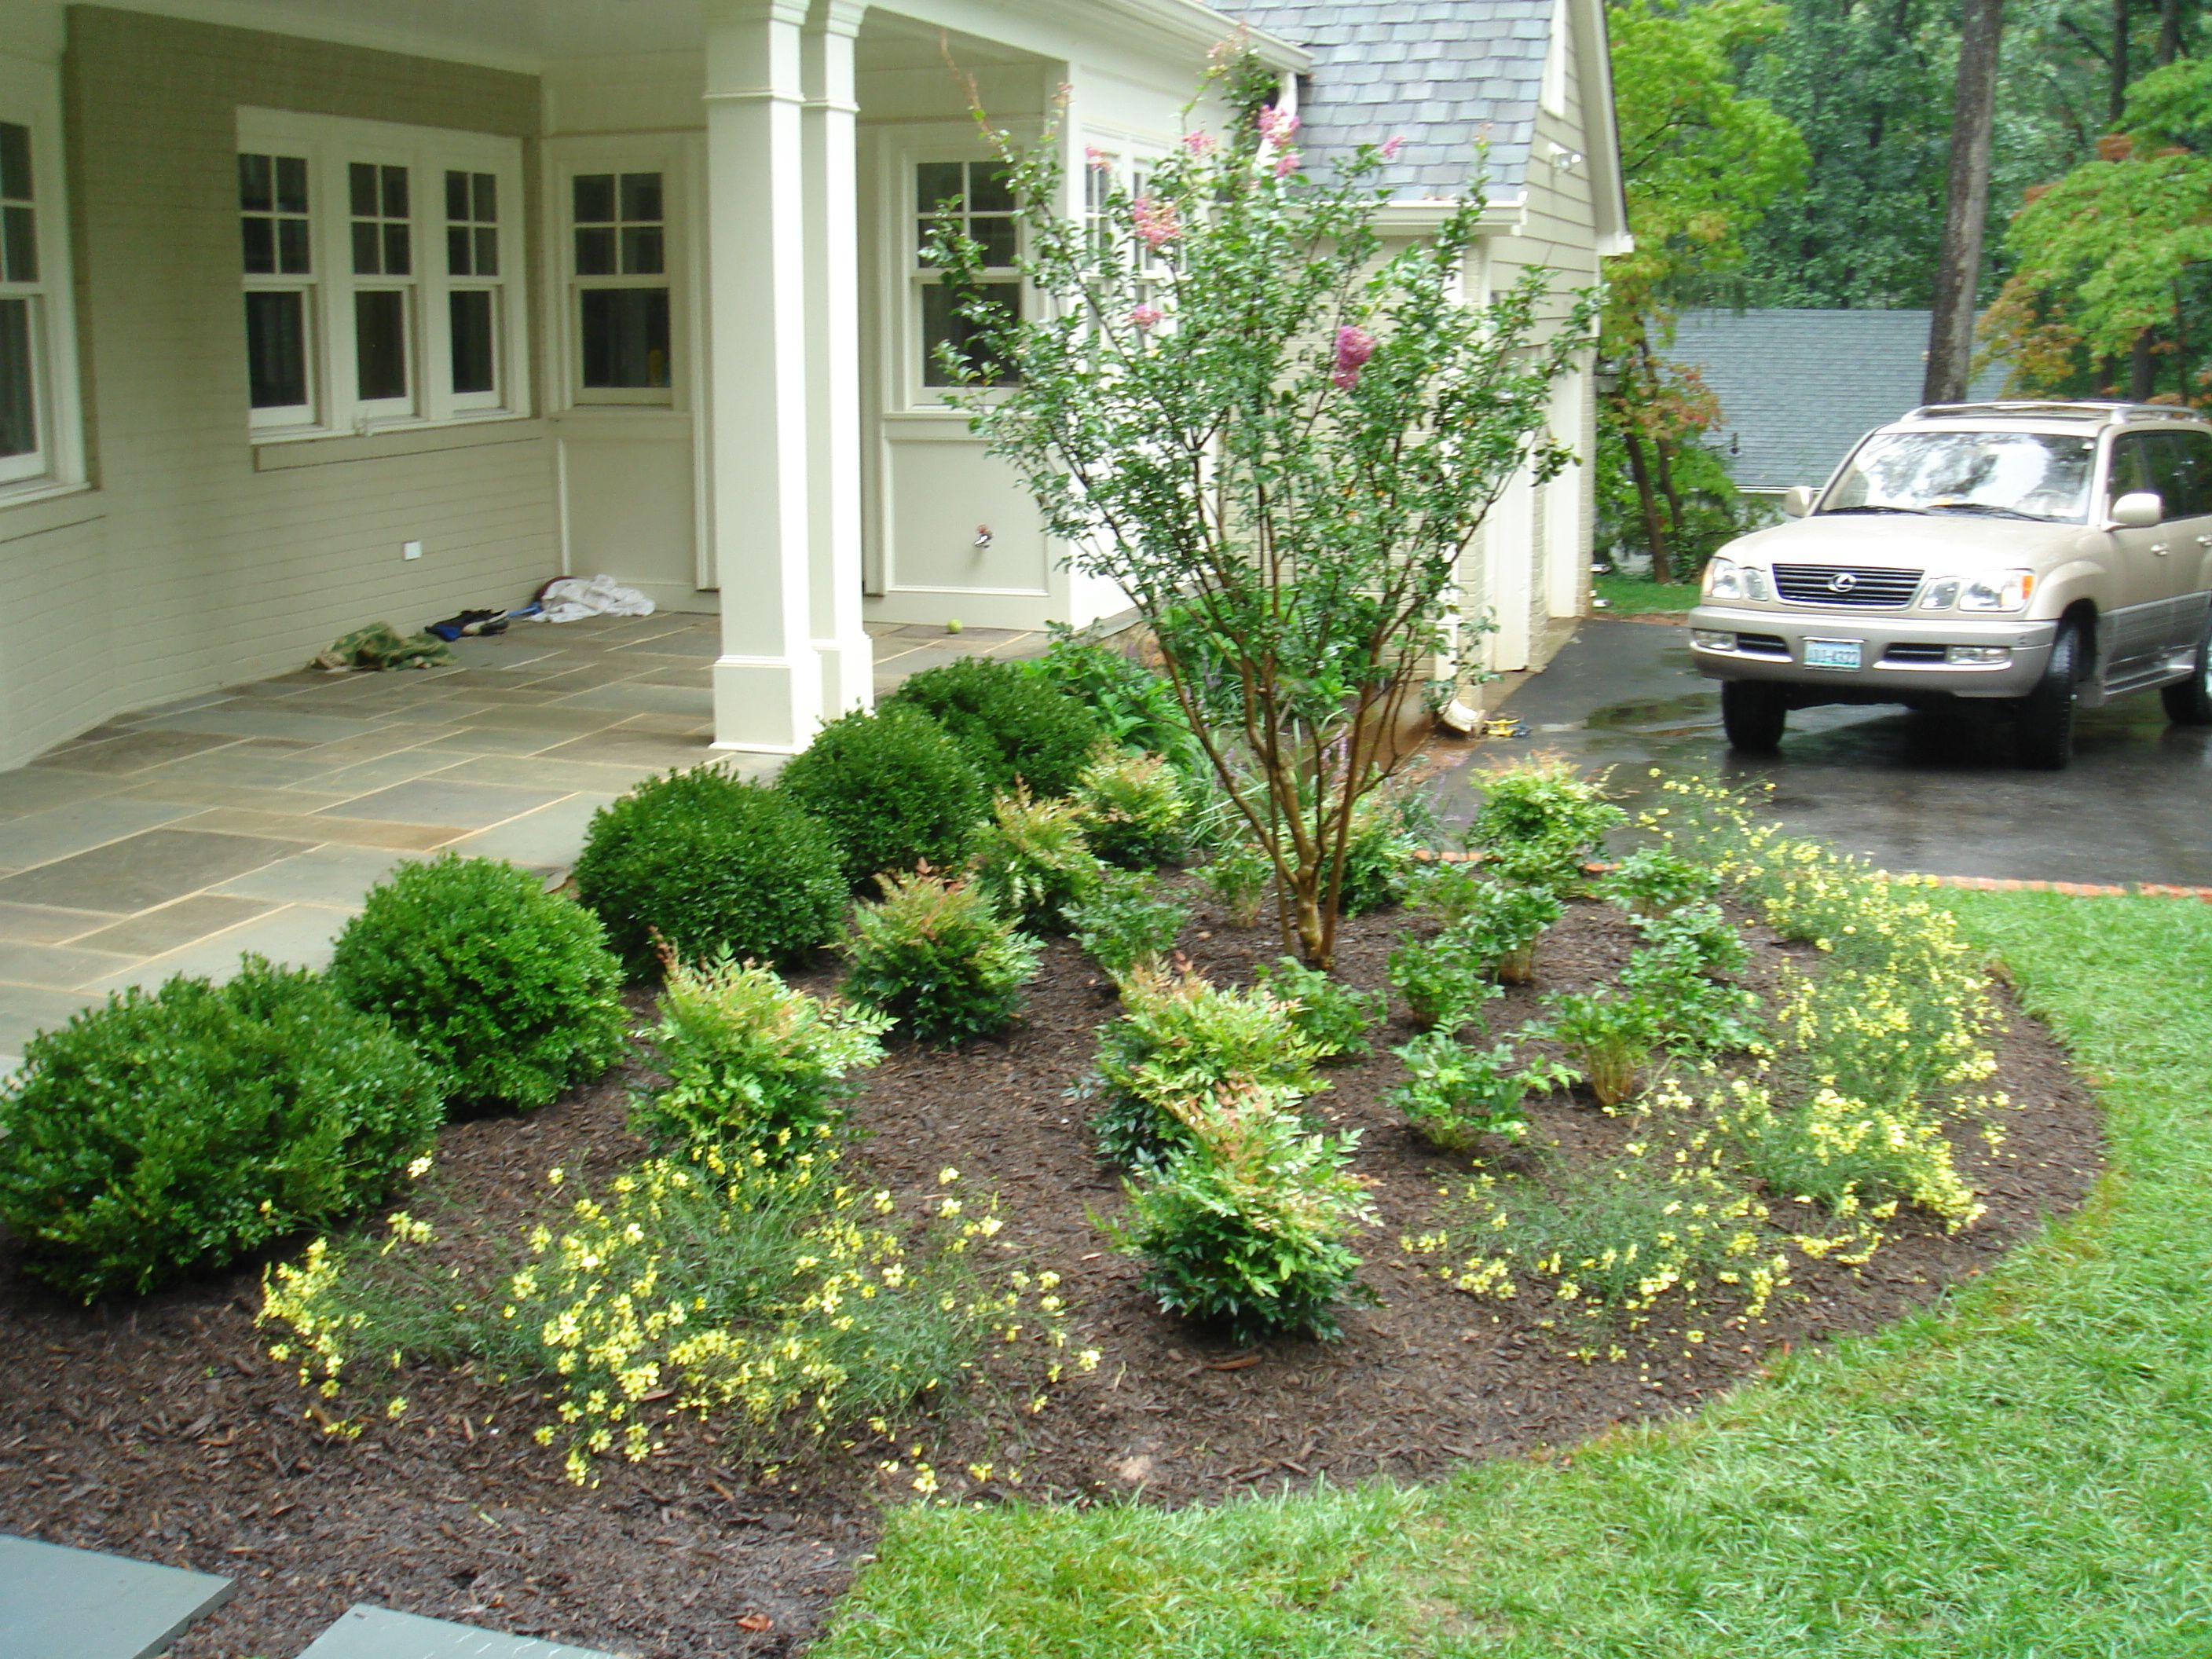 Small garden landscaping design ideas for front yard jpg - For Small Front Yard Backyard Landscaping Ideas12 Yard Landscape